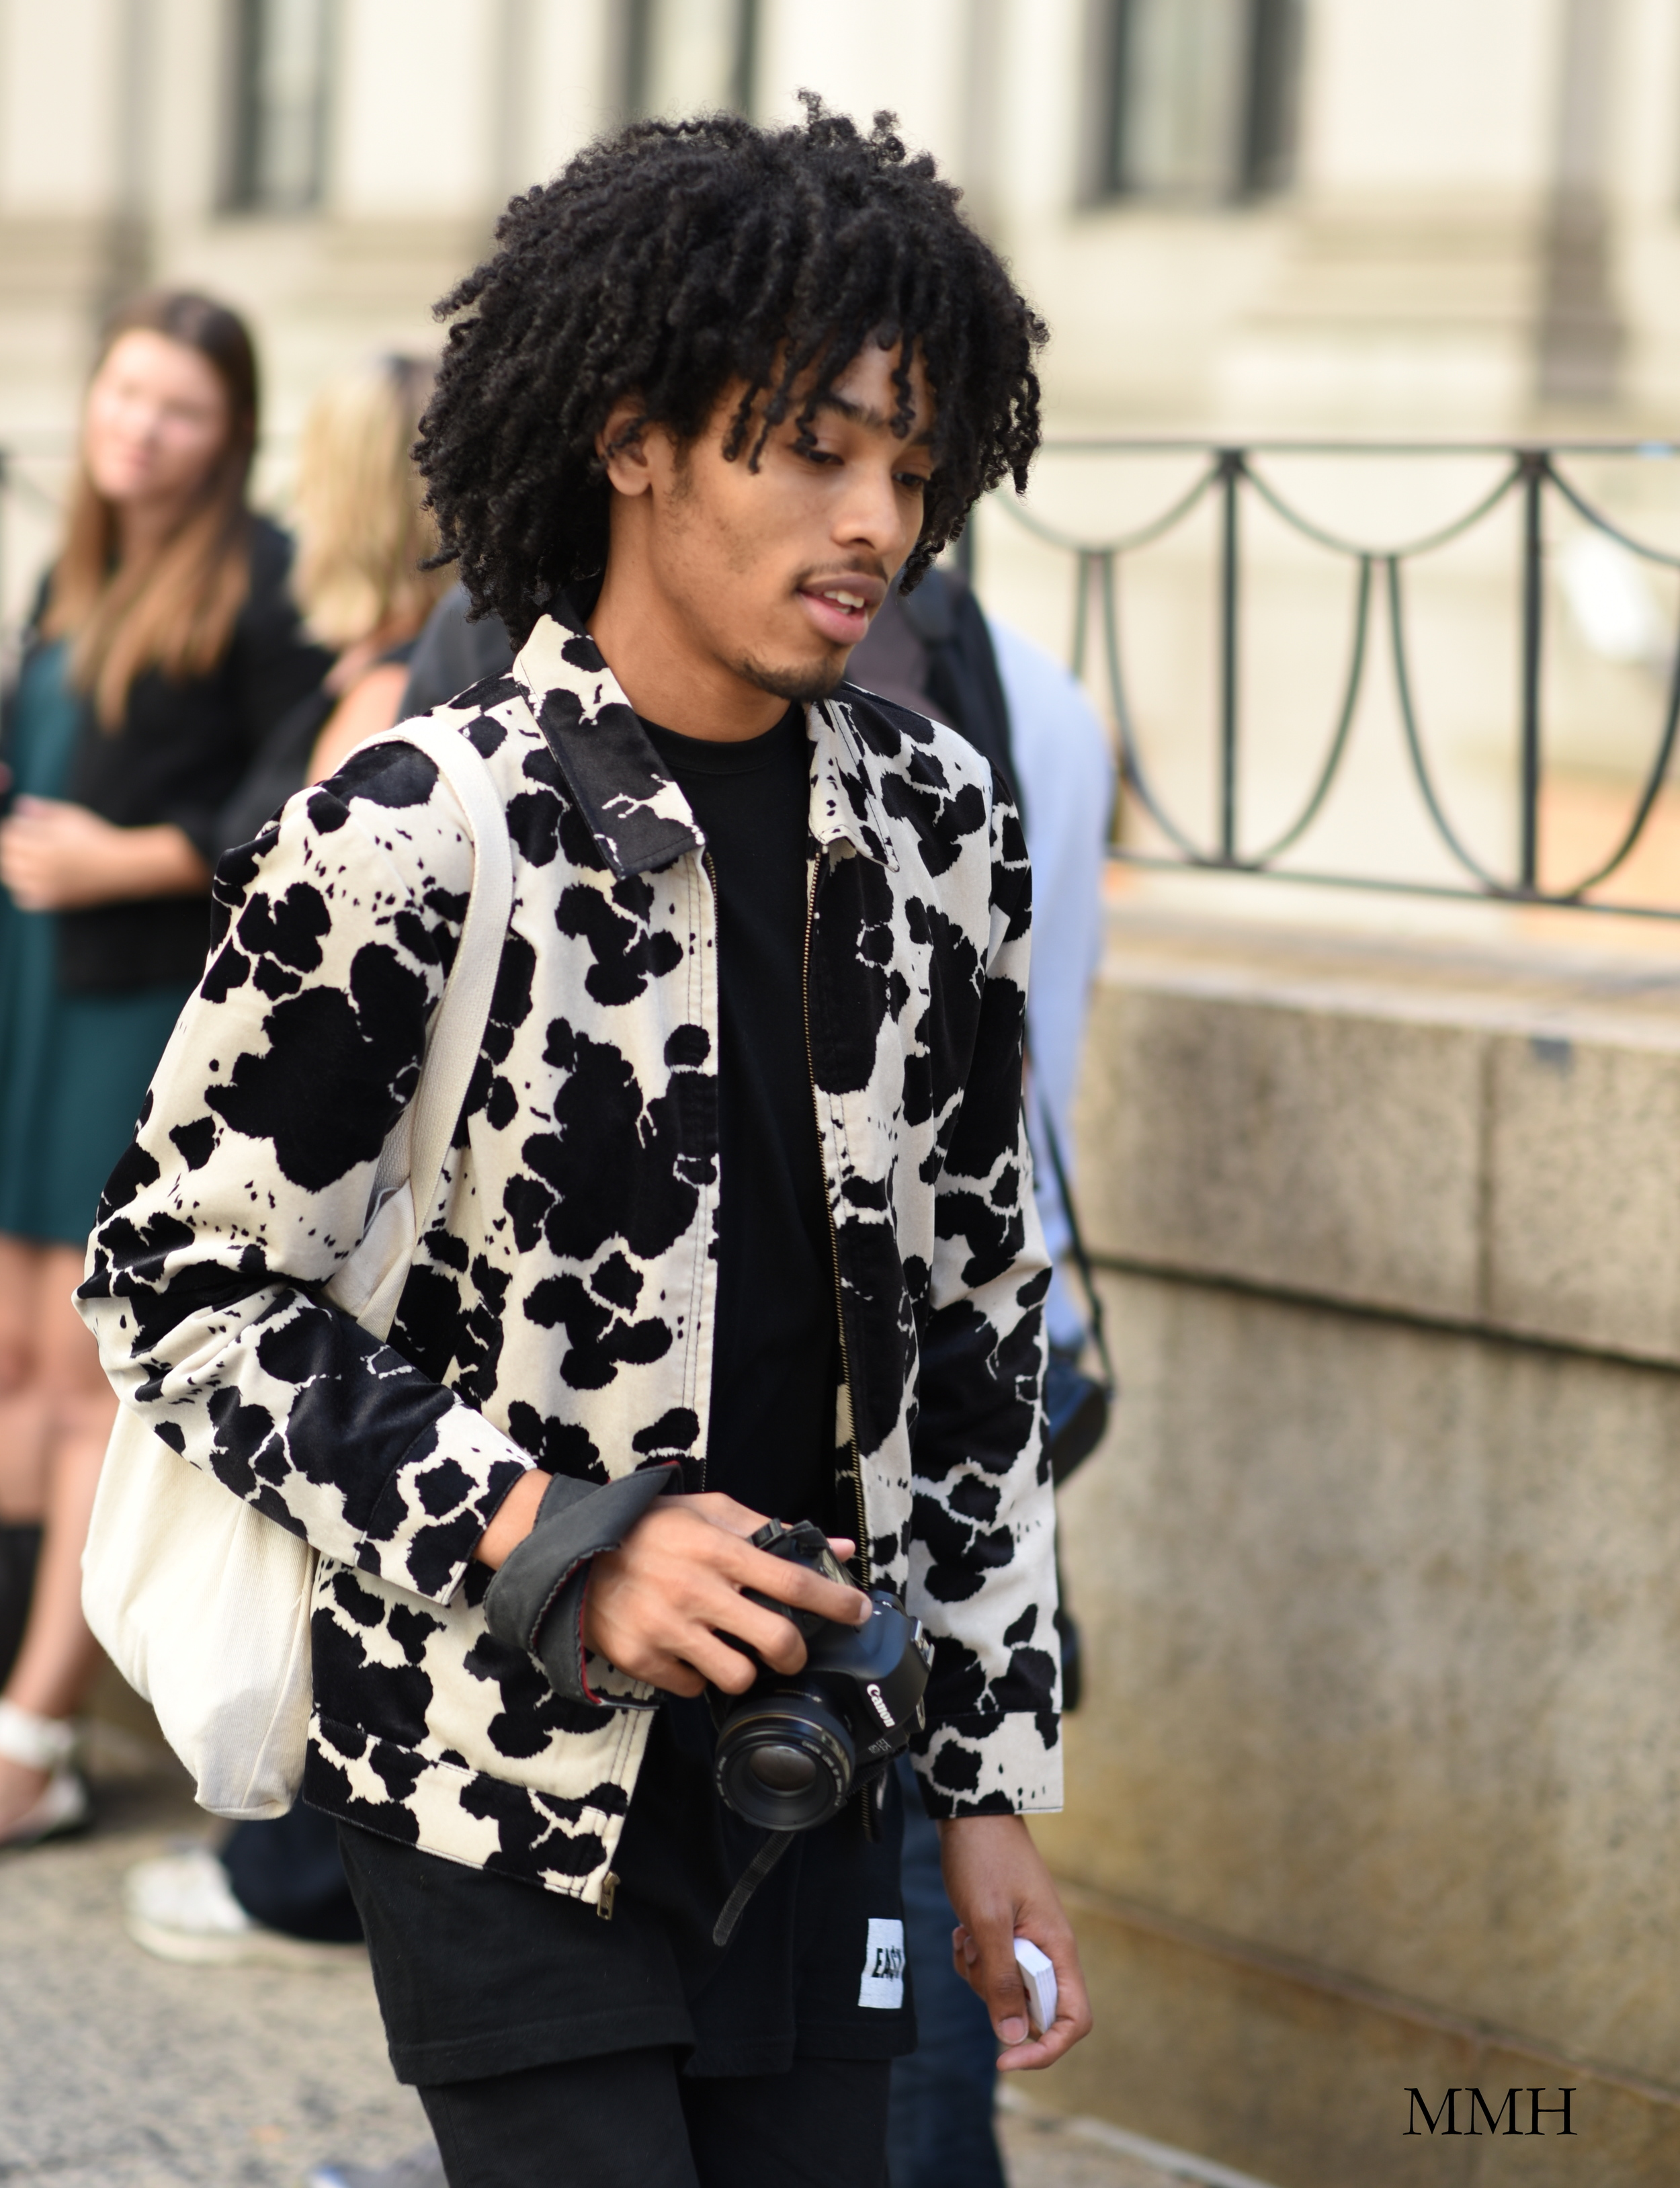 Artistic bomber jacket with a collar.